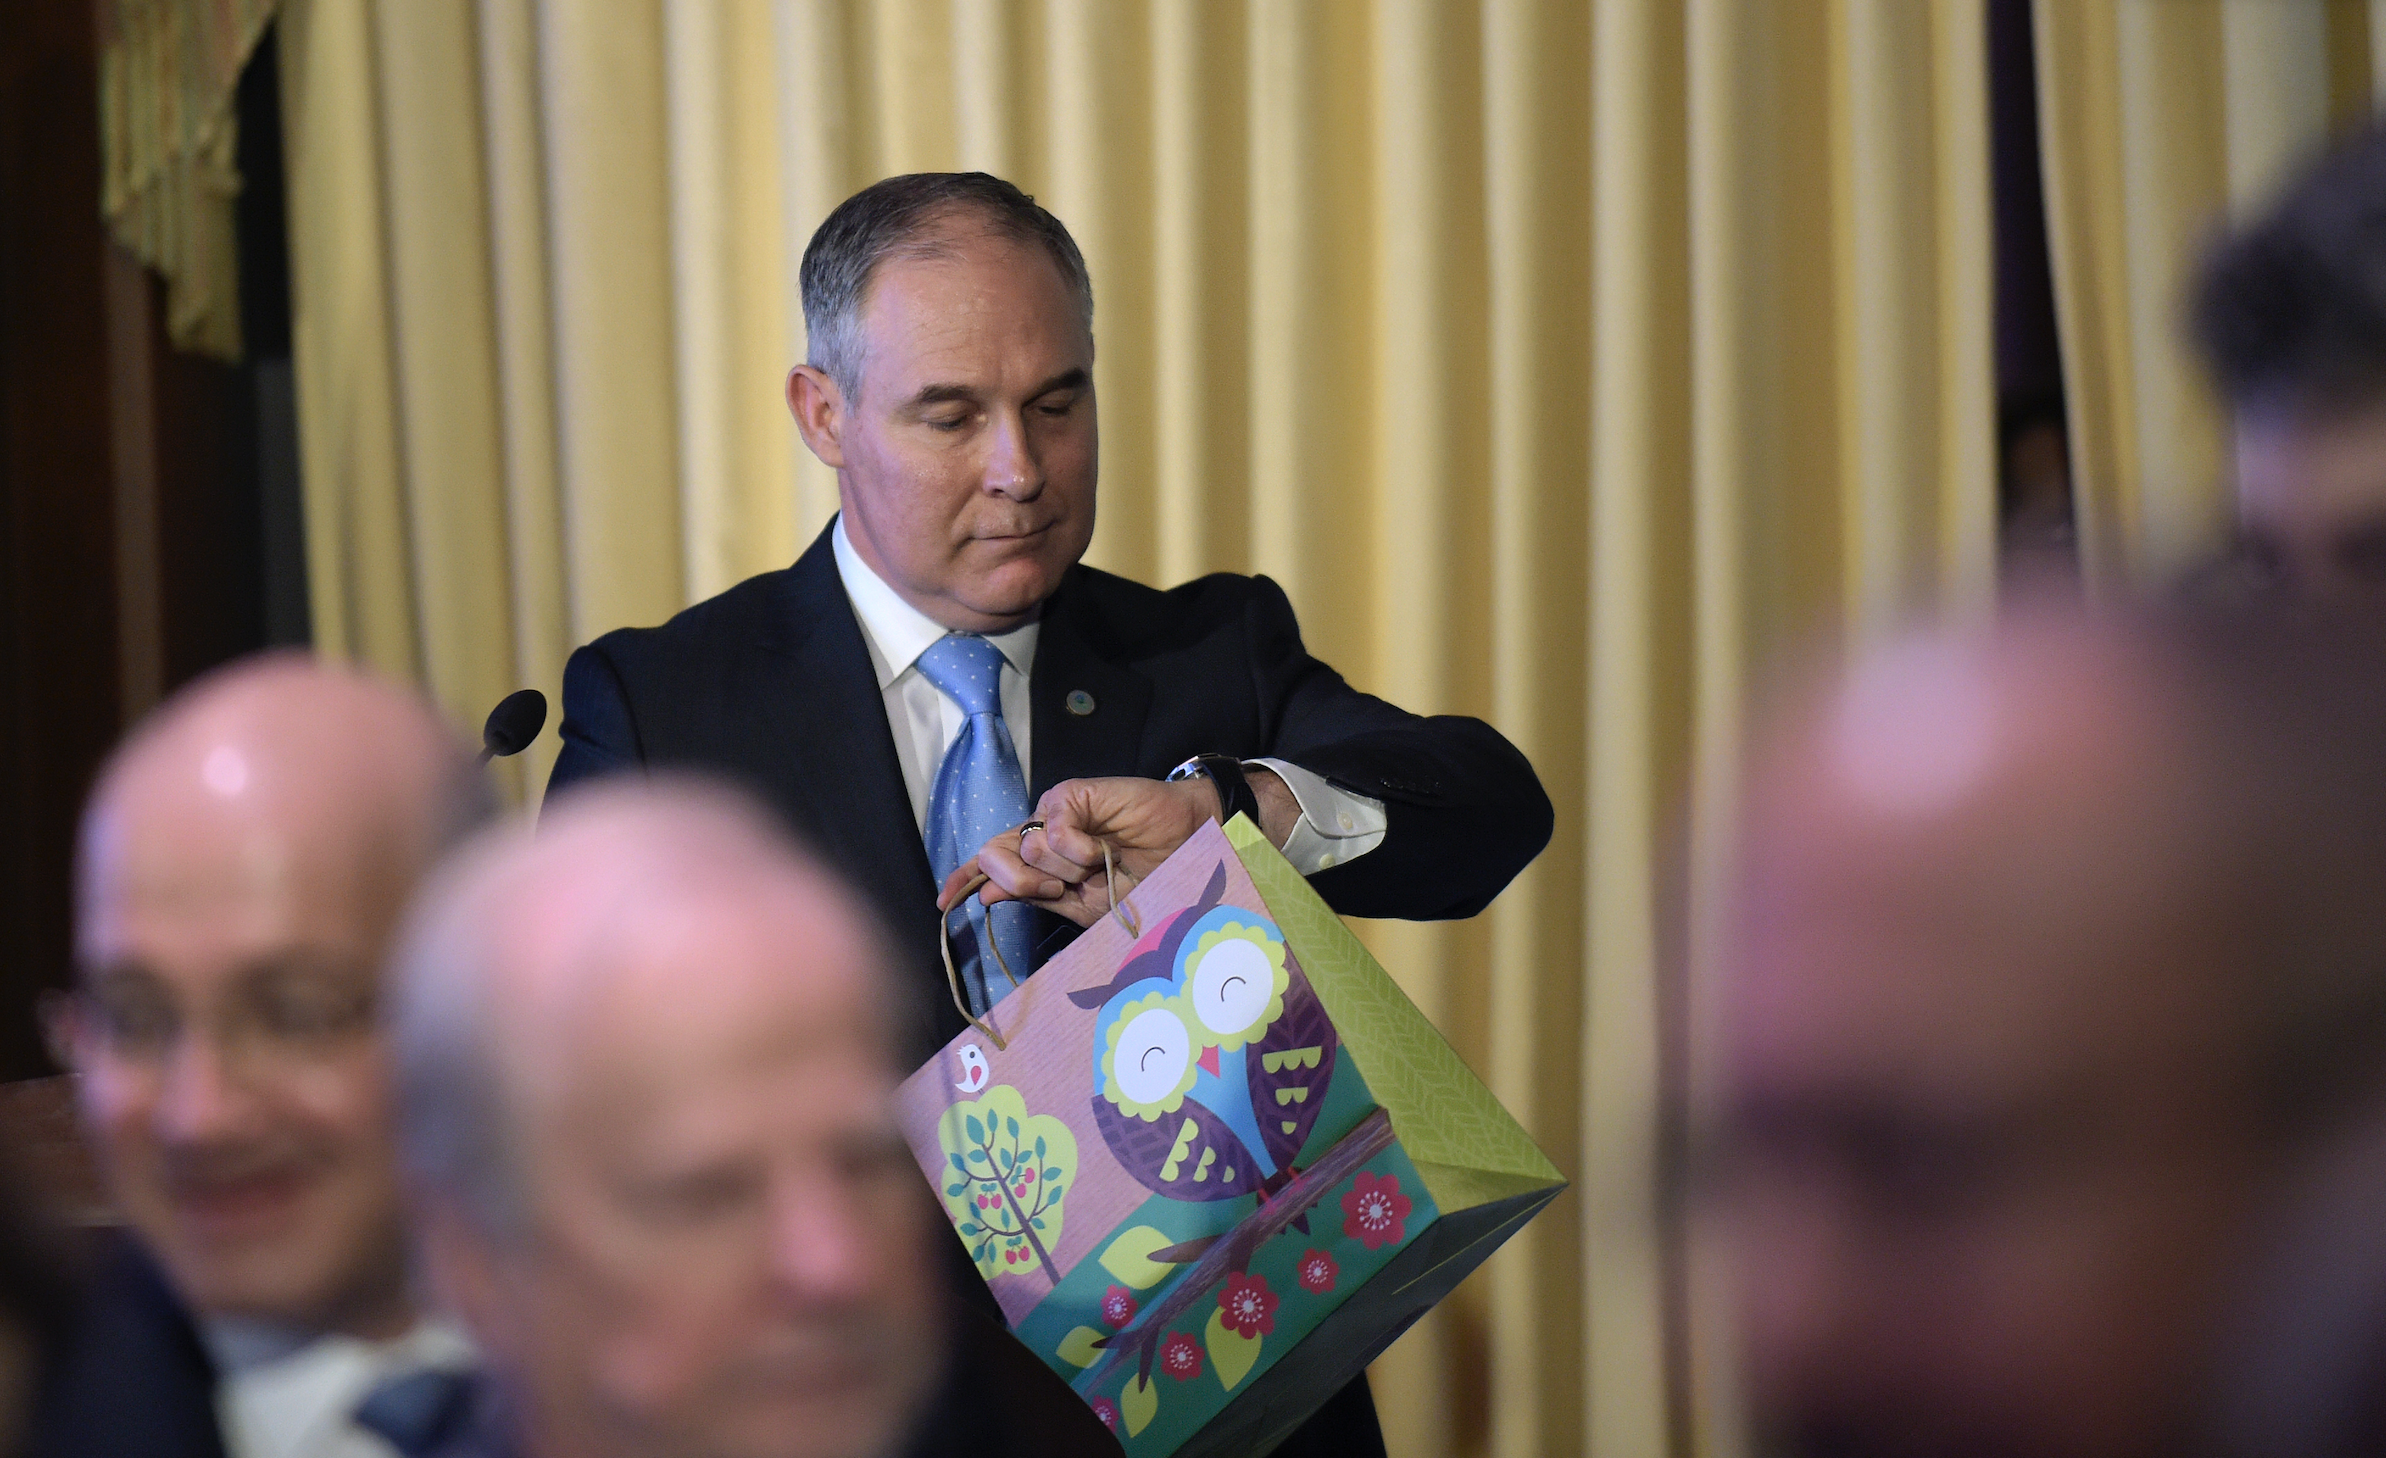 Report: EPA Investigates EPA Head Scott Pruitt For His Climate-Denying Garbage